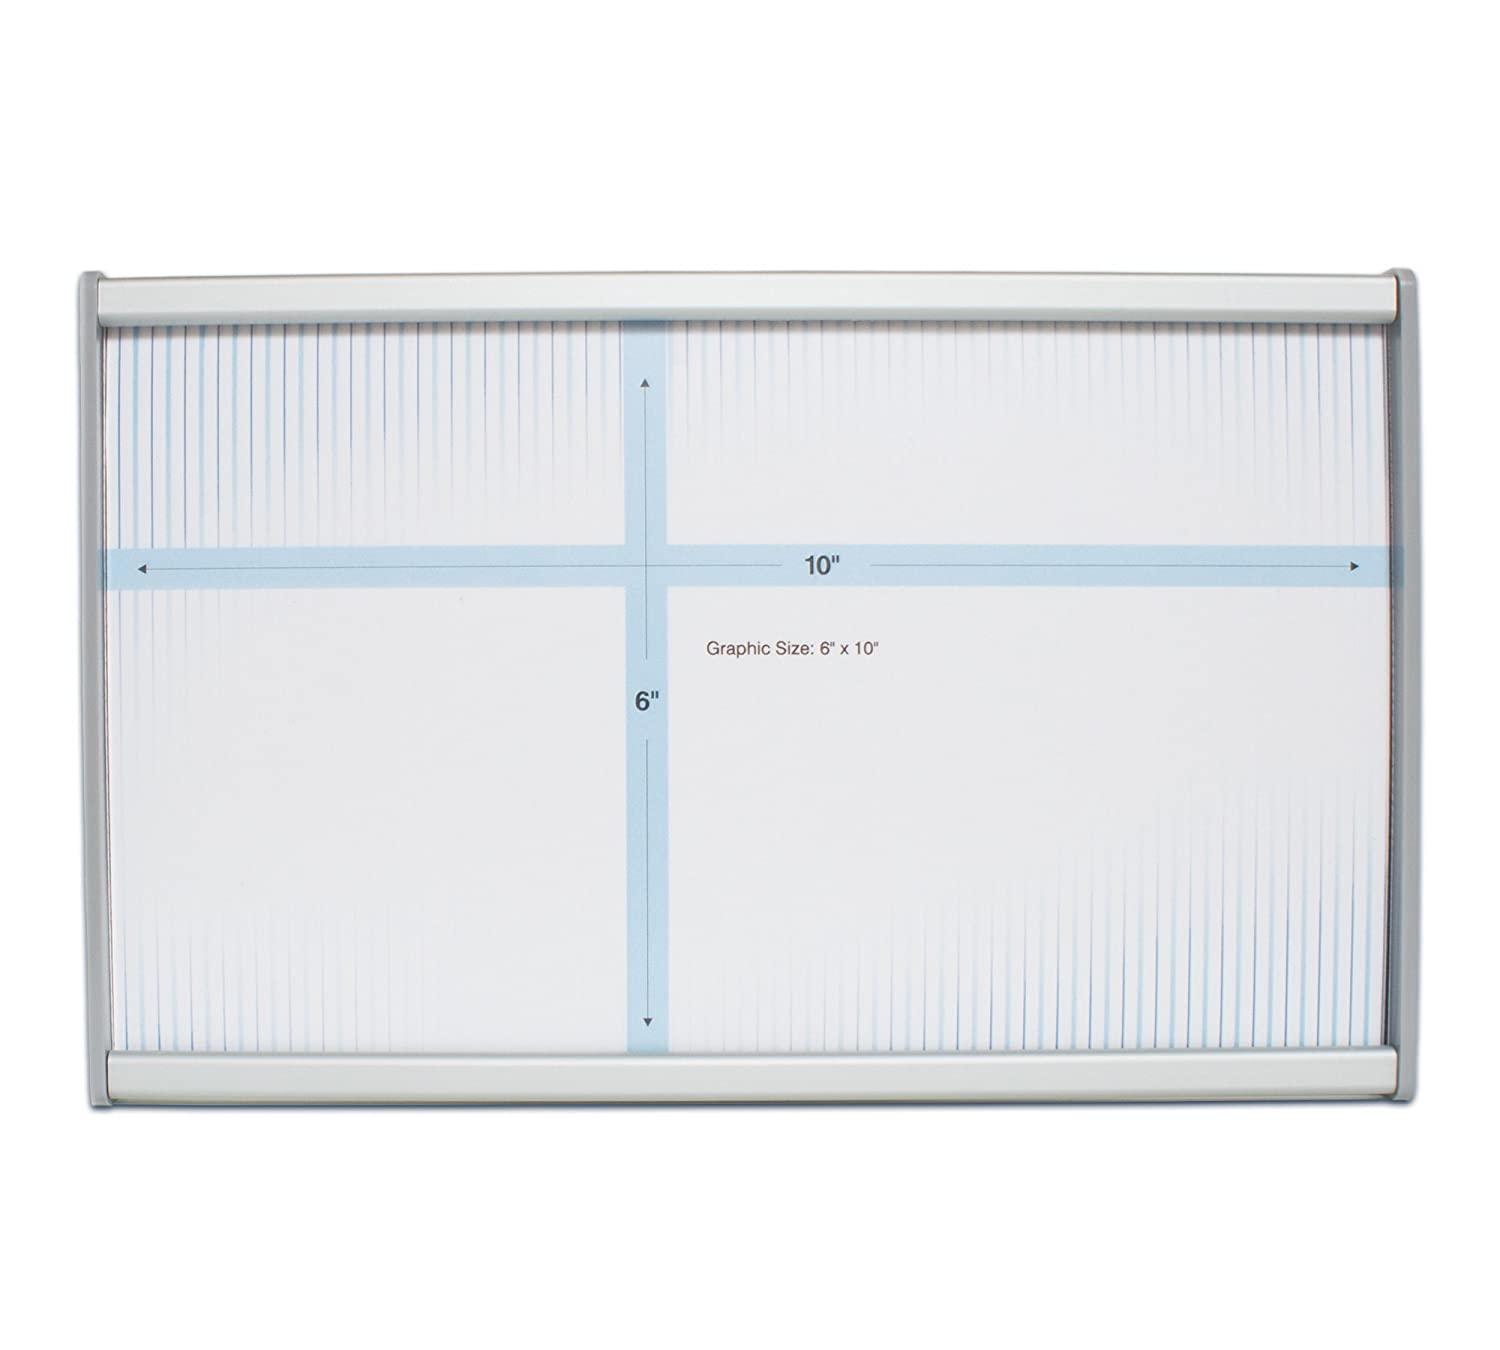 6x4 Brushed Aluminum HID-WML-F604 Howard Industries Changeable Business and Store Sign Holder with Suction Cup